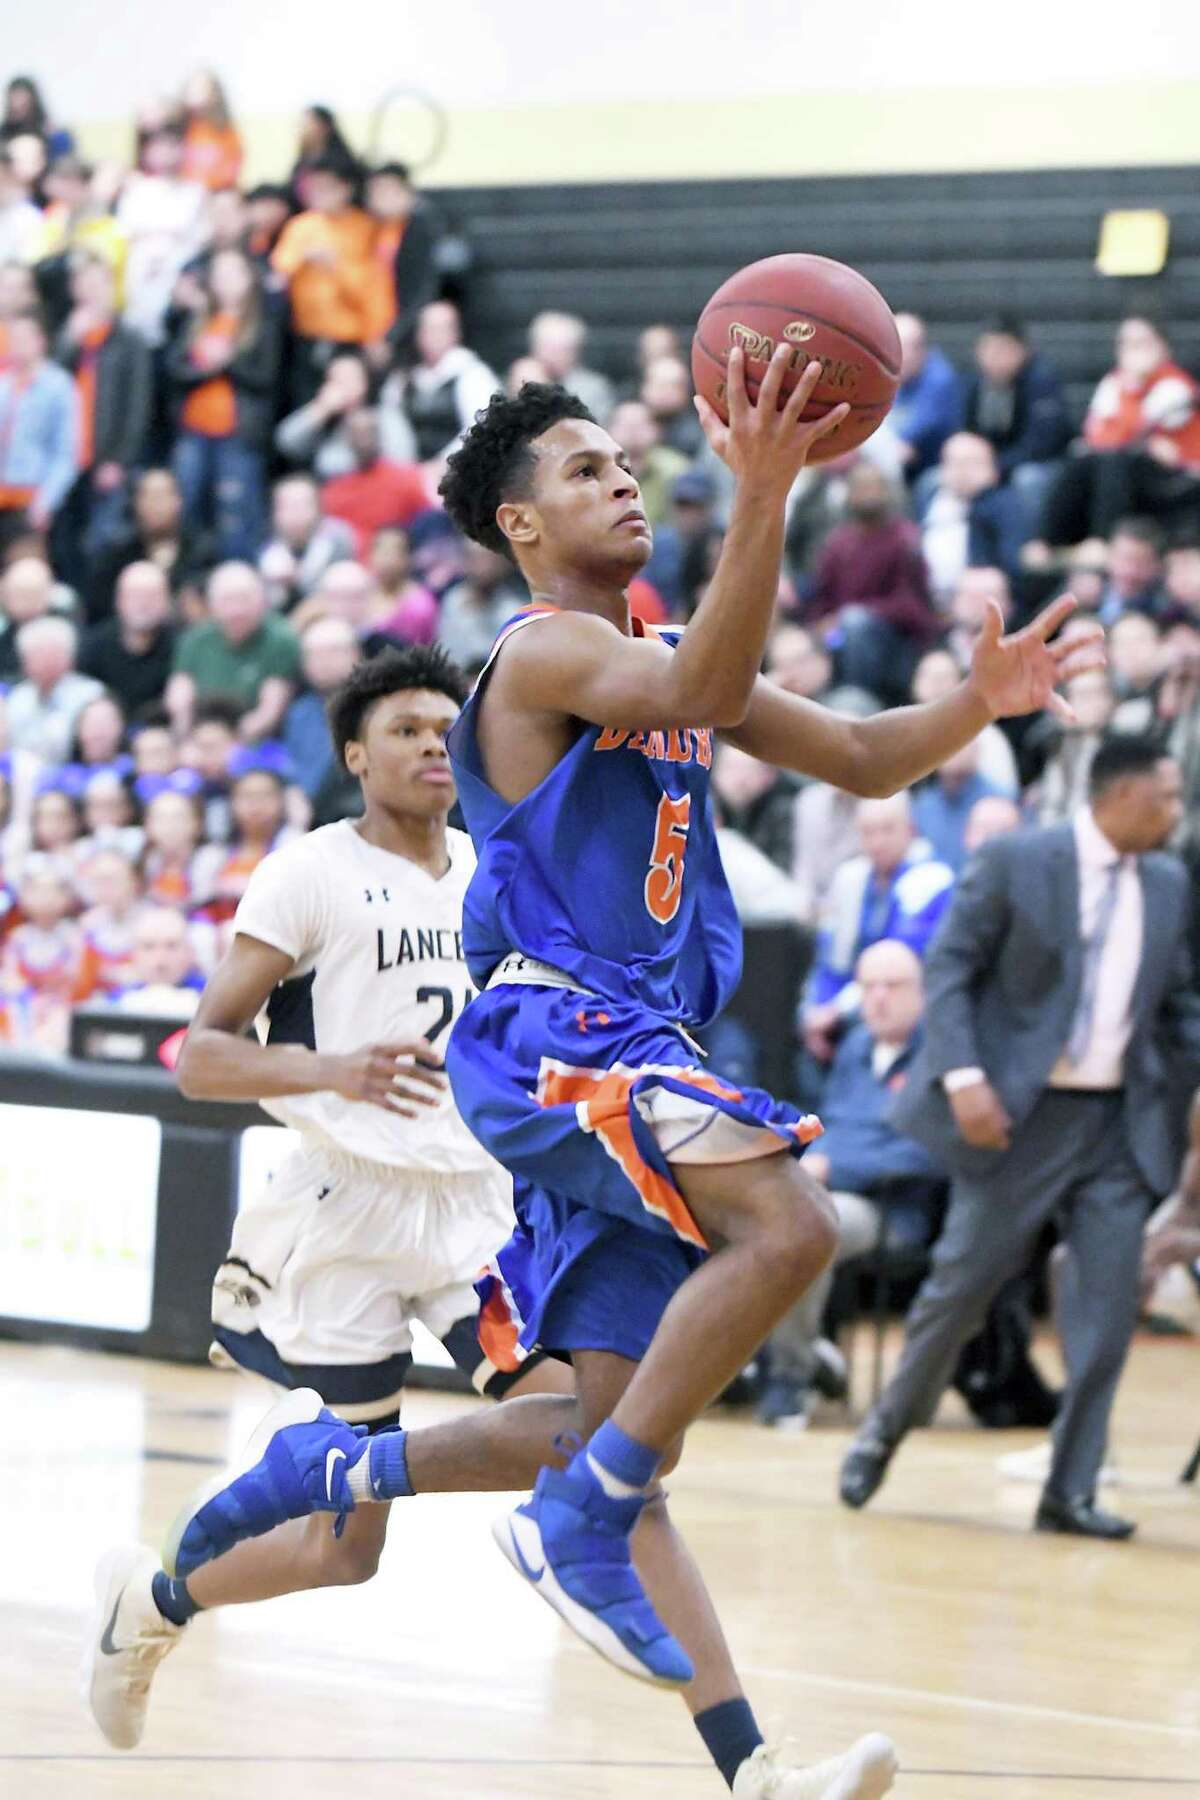 Danbury's Javon Hernandez goes up for a shot against Notre Dame-Fairfield at Trumbull High on Monday.